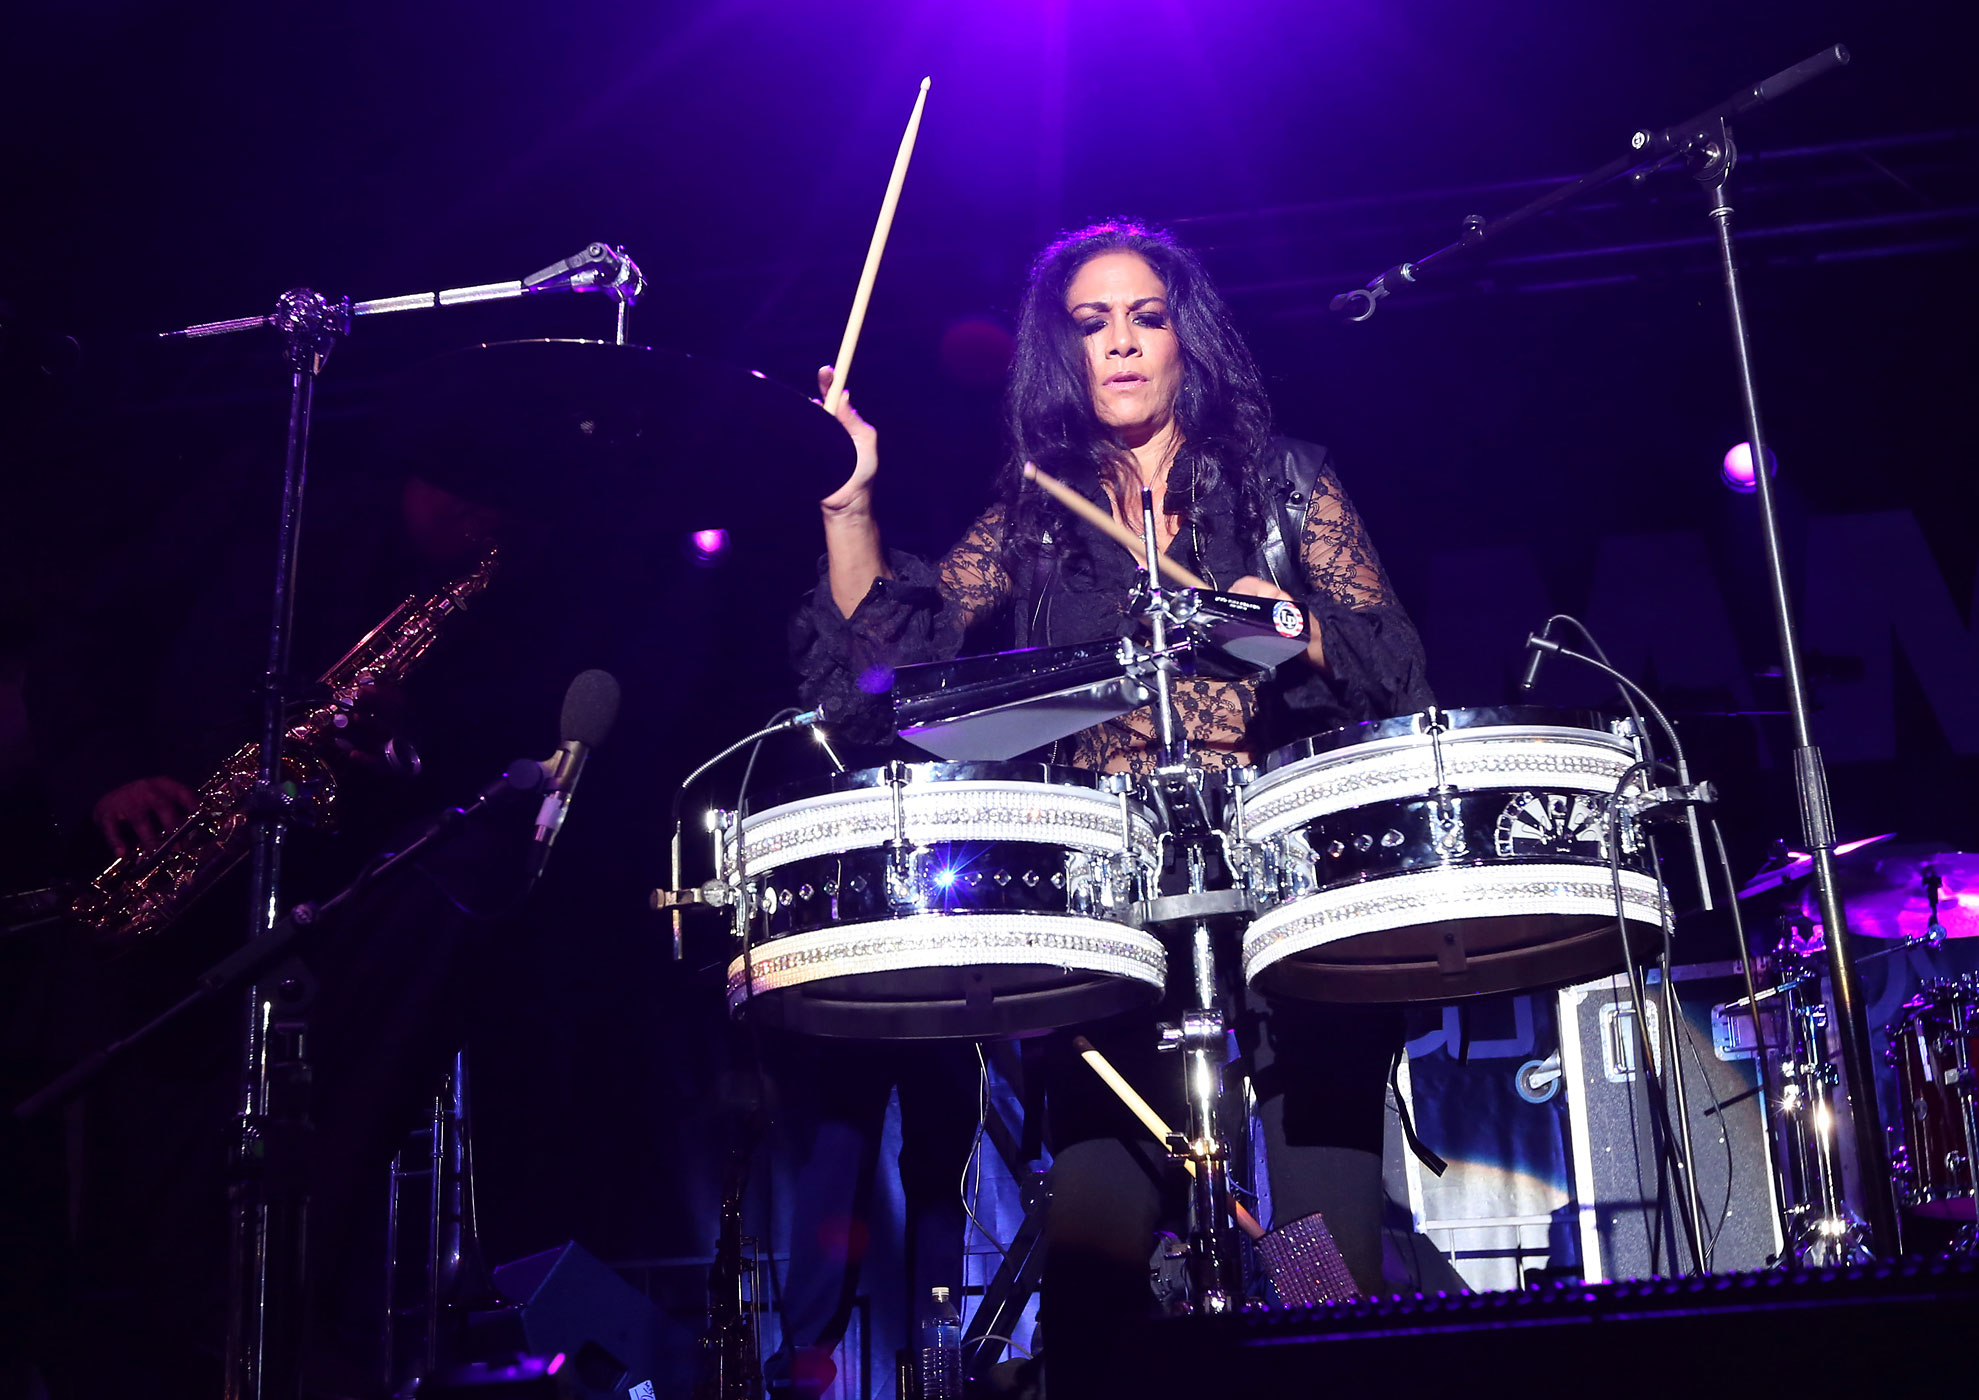 Sheila E. attends the 2014 National Association of Music Merchants show at the Anaheim Convention Center on January 24, 2014 in Anaheim, Ca.